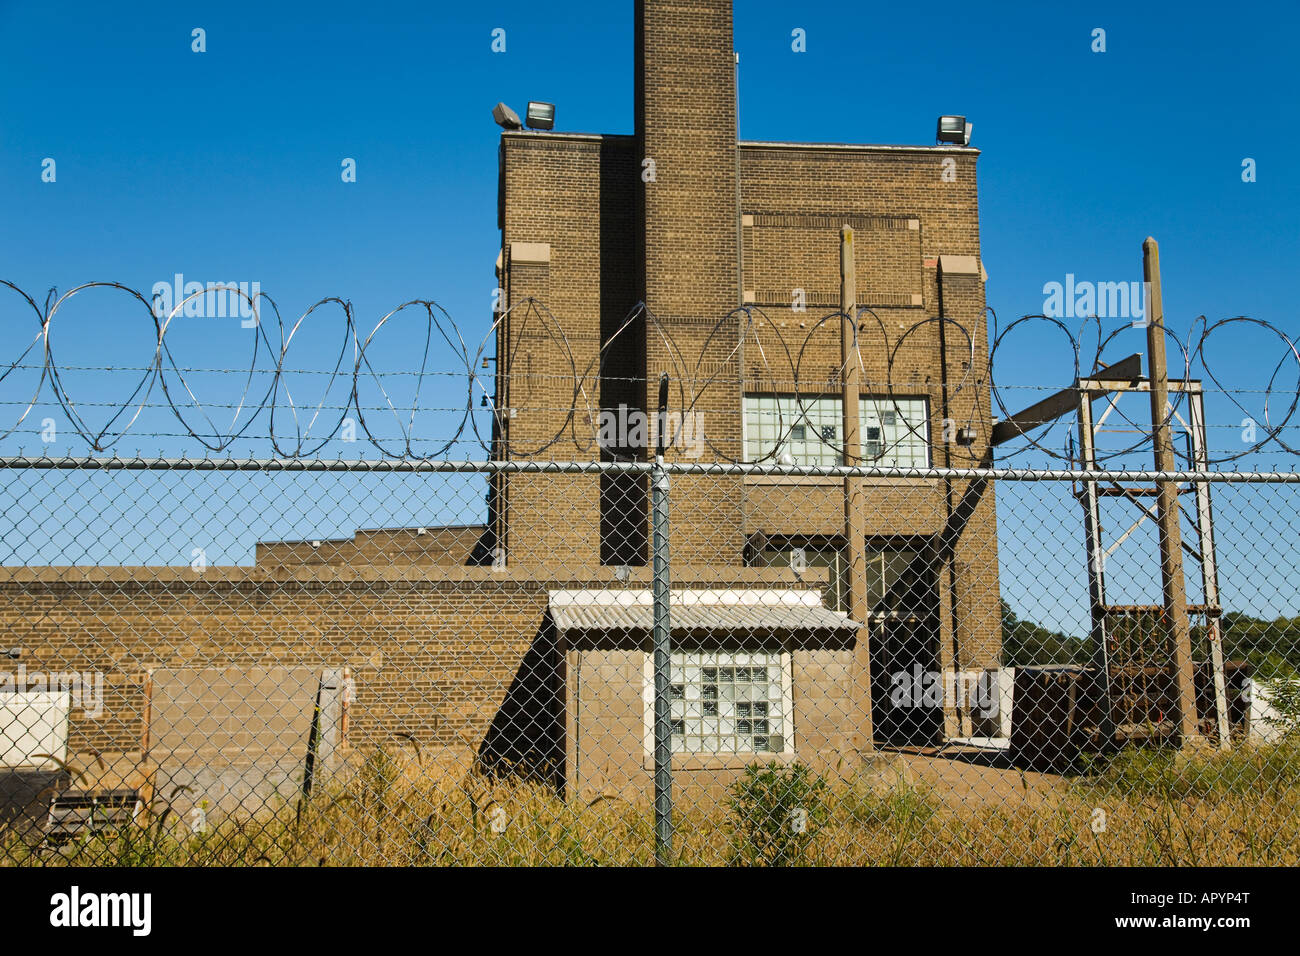 ILLINOIS Moline Coils of barbed wire above metal chain link fence Sylvan Island Park old brick building former factory - Stock Image